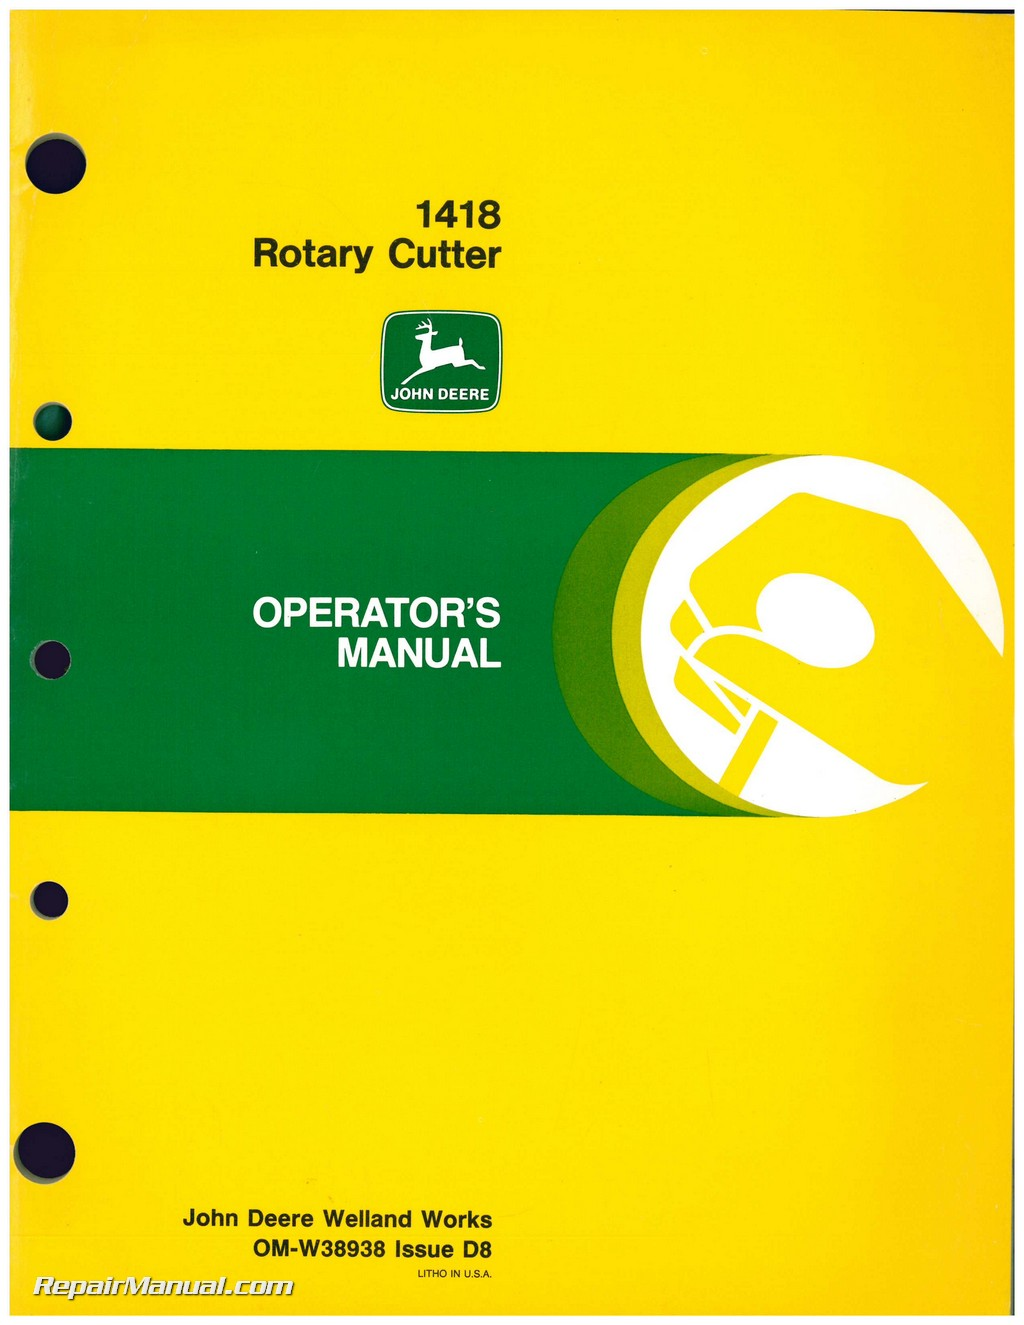 doc01009920150826125927_001 used john deere 1418 rotary cutter operators manual